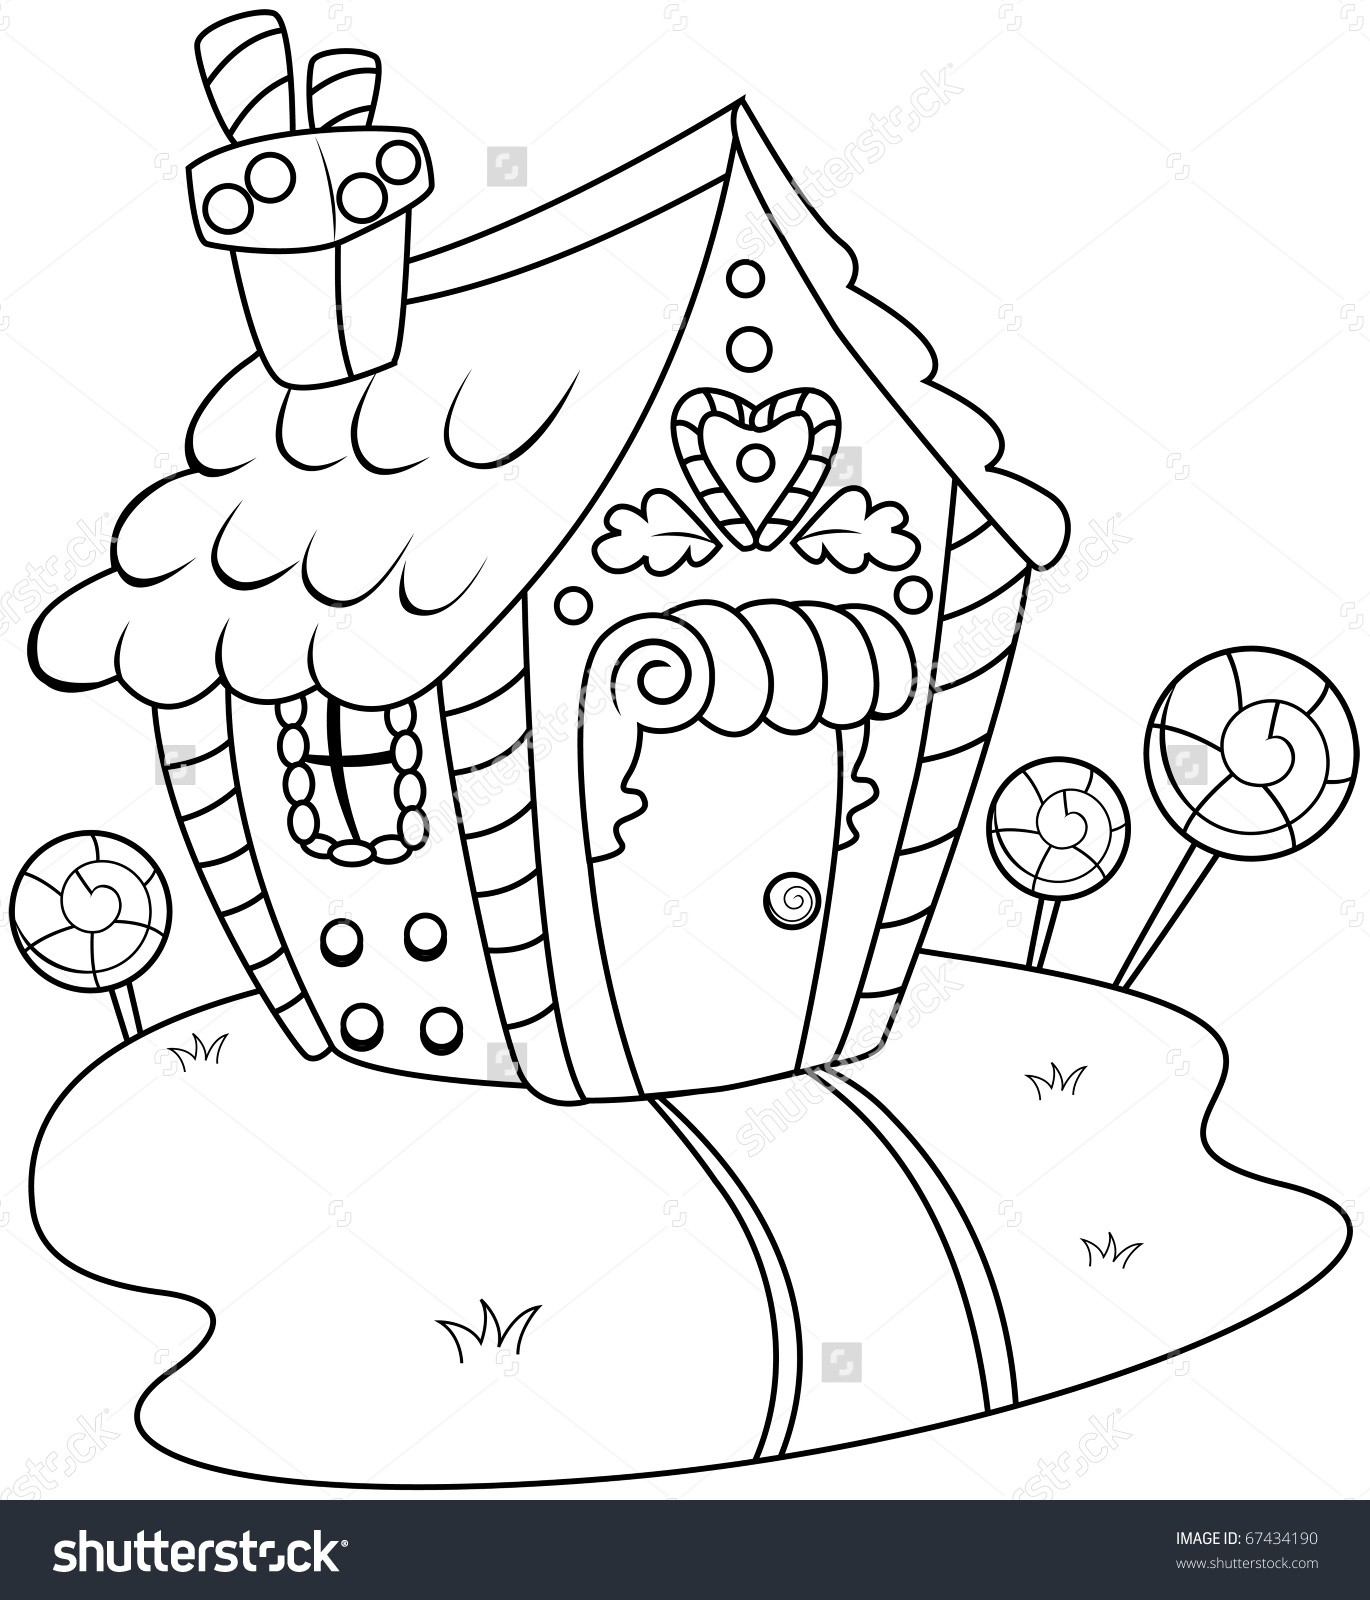 1370x1600 Gingerbread Man And House Coloring Page Free Draw To Color